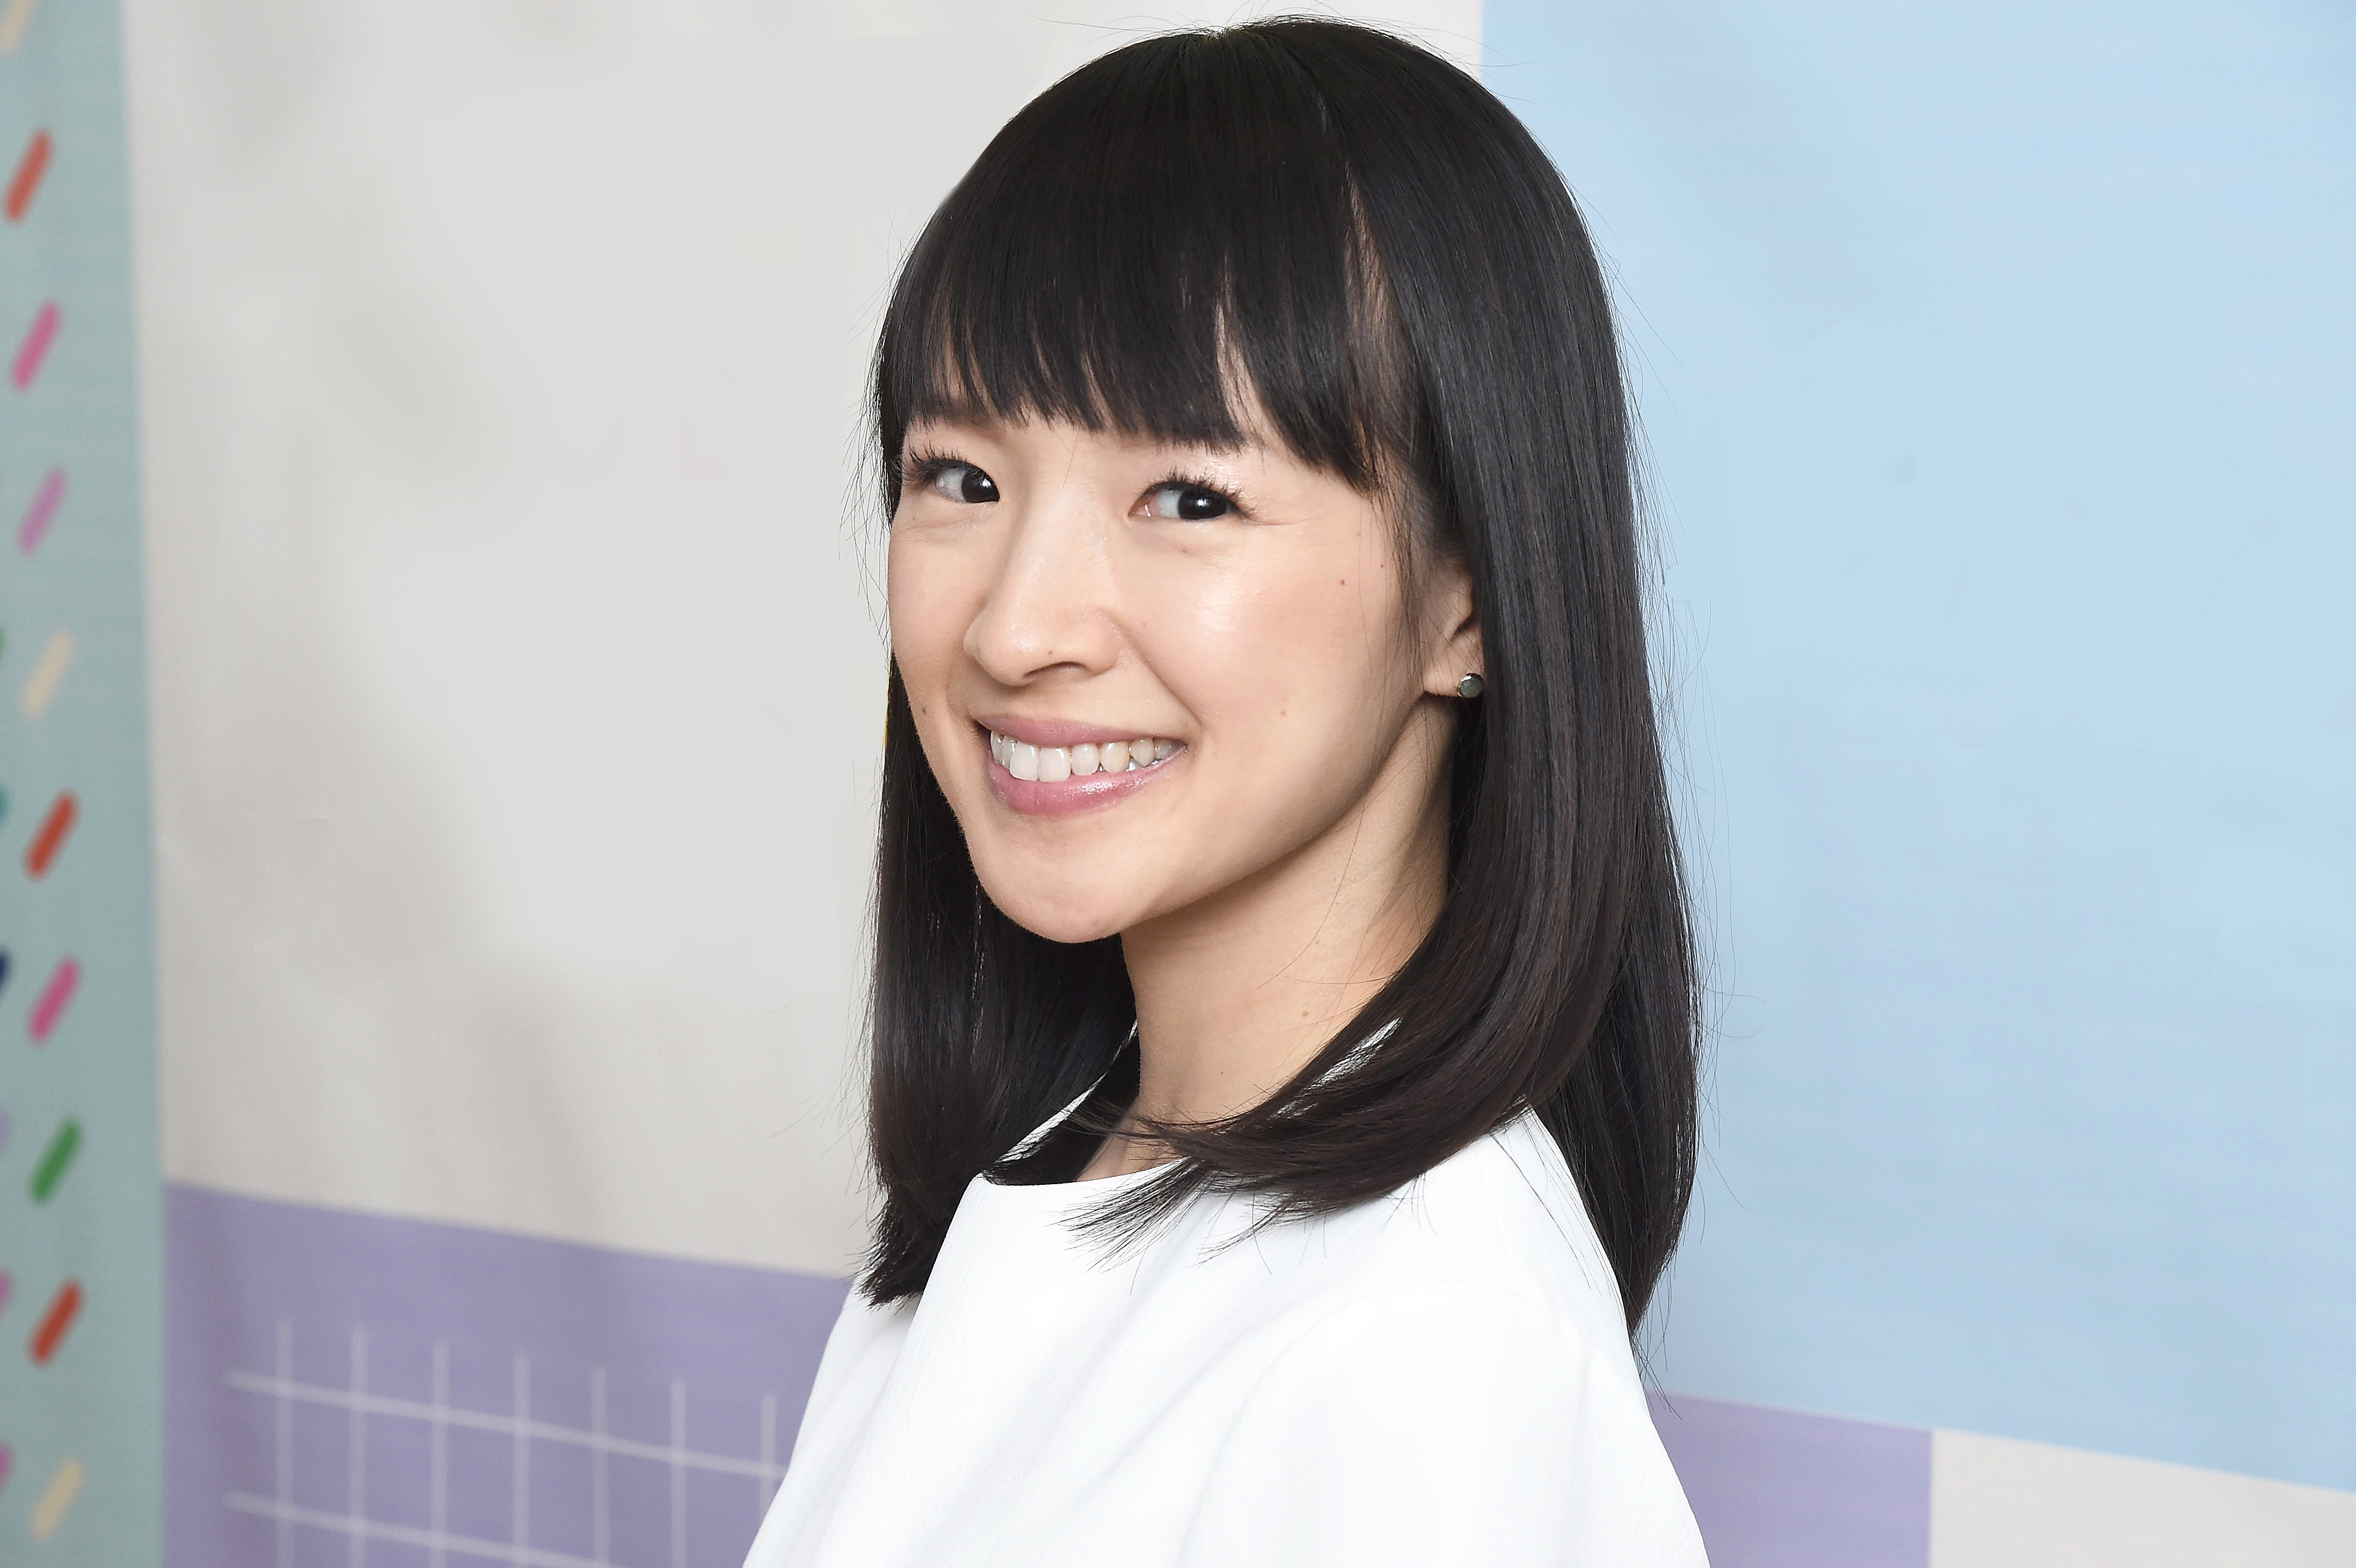 Marie Kondo Wrote Two New Books, and This News Sparks Joy